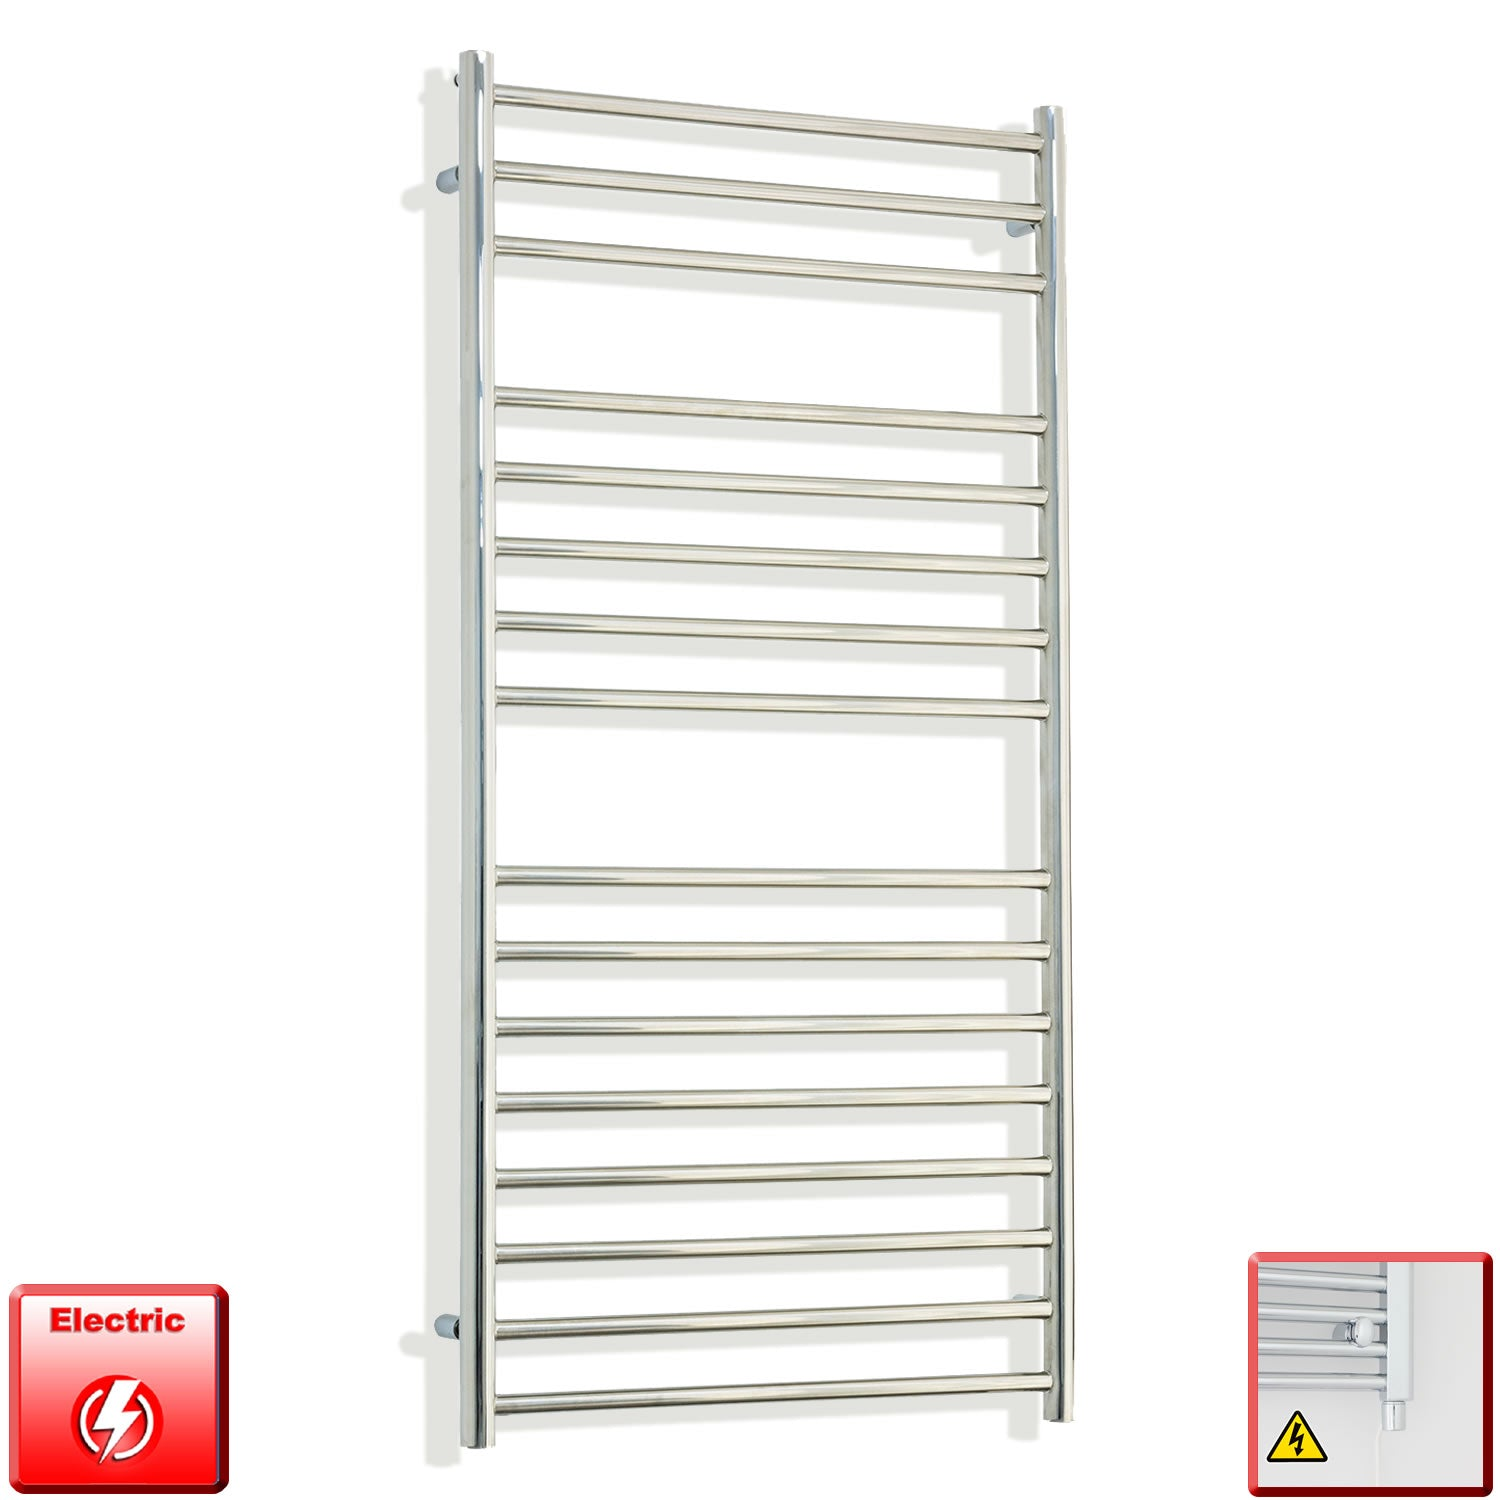 500mm Wide 1200mm High Pre-Filled Chrome Electric Towel Rail Radiator With Single Heat Element